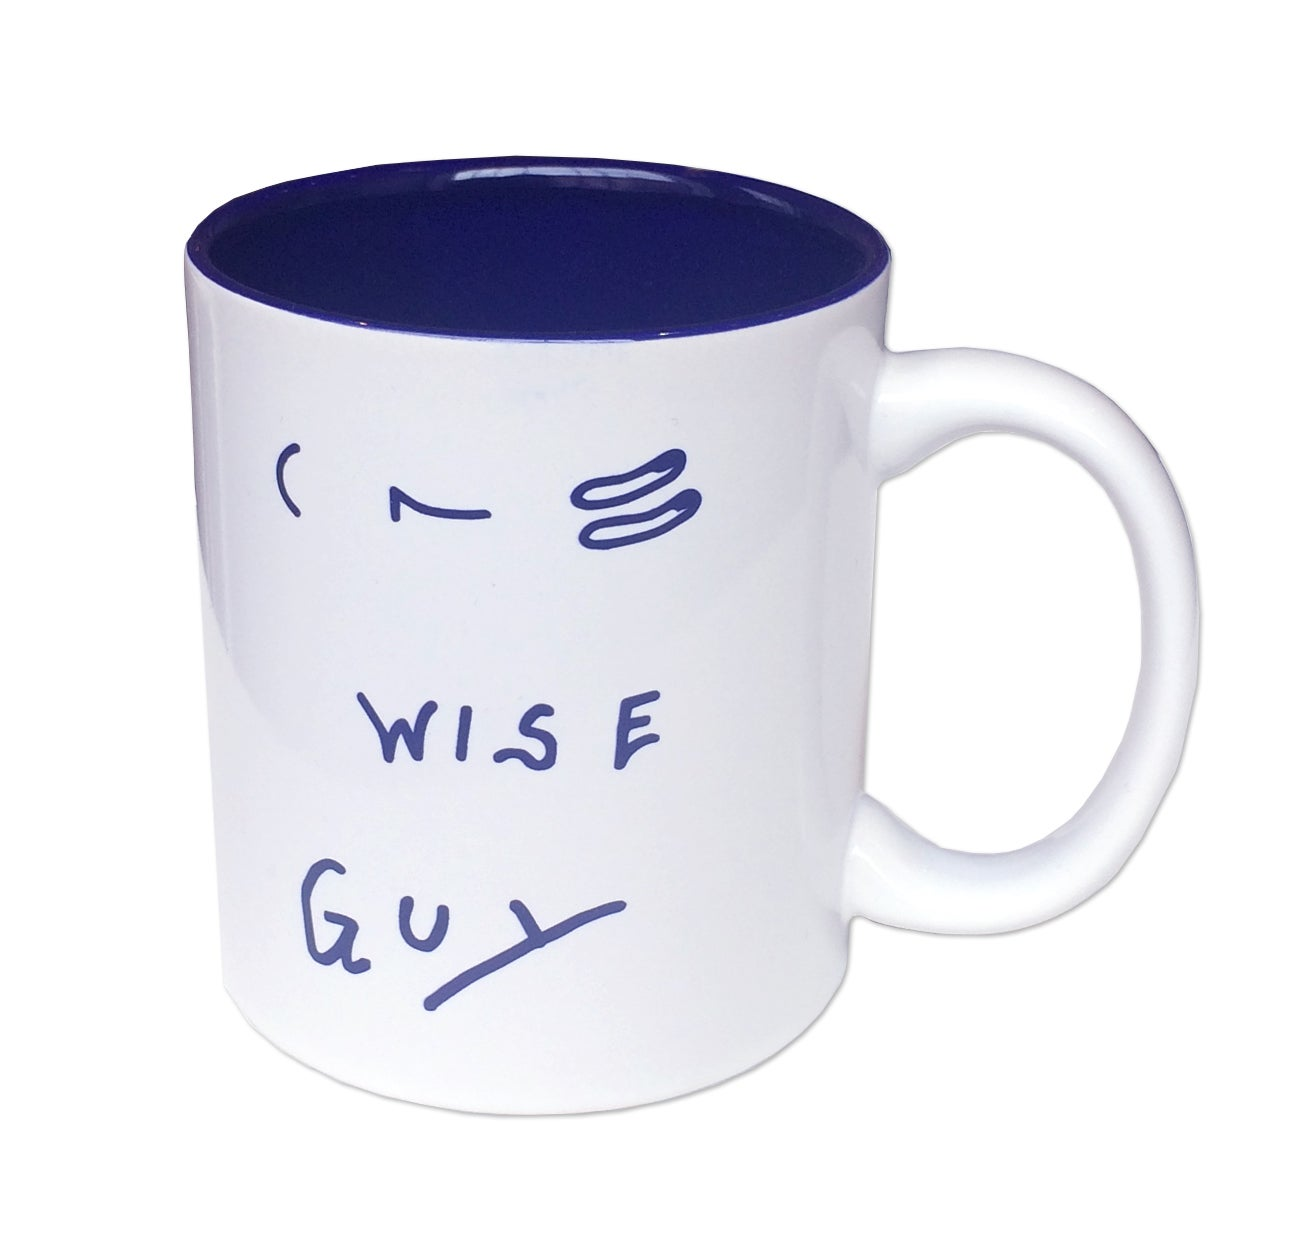 Image of Wise Guy Mug